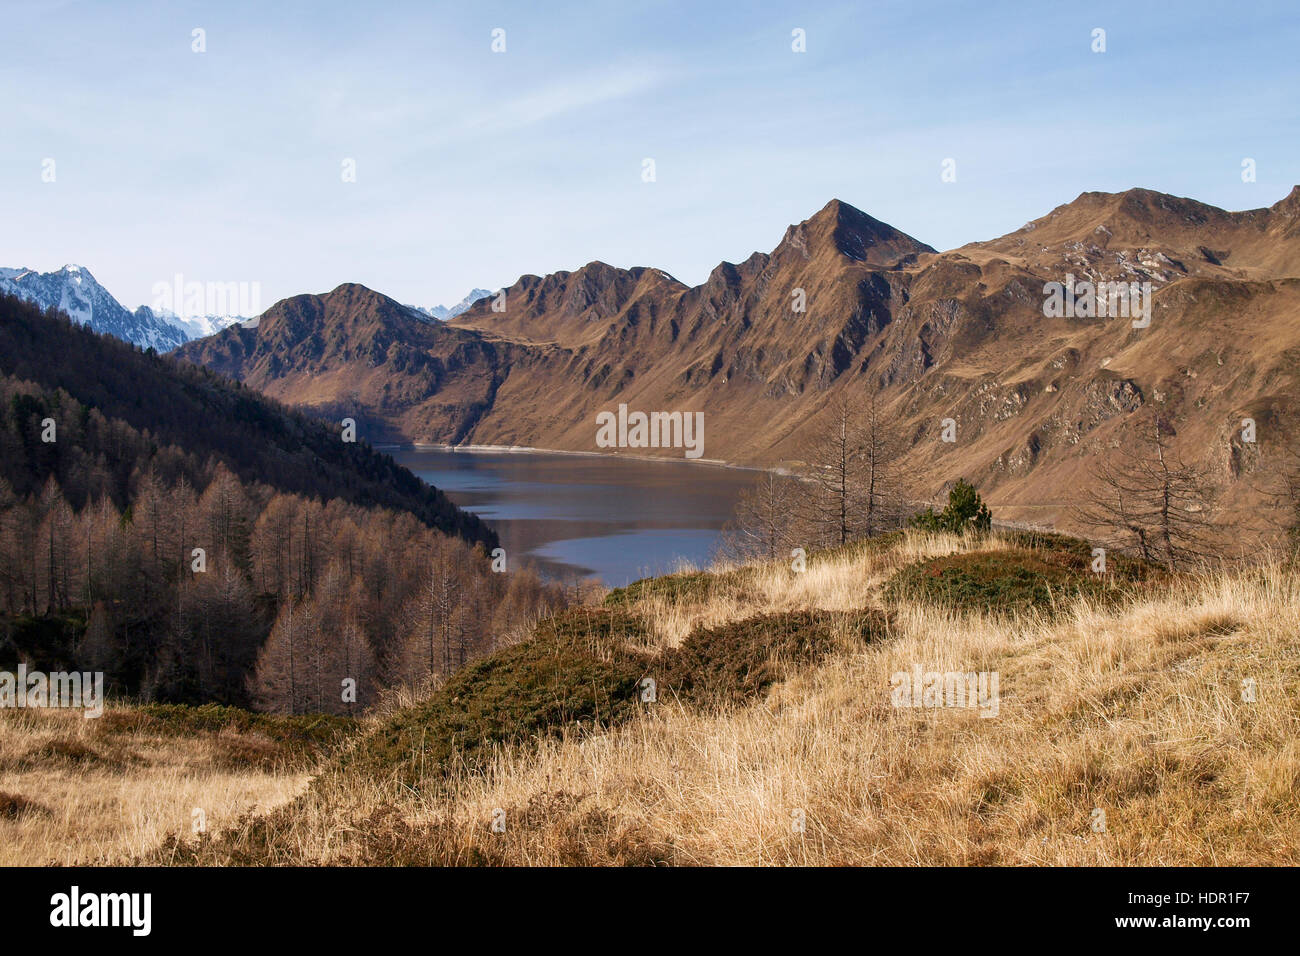 Val Piora, Switzerland: Lakes Ritom, Cadagno, Tom in the autumn. Stock Photo